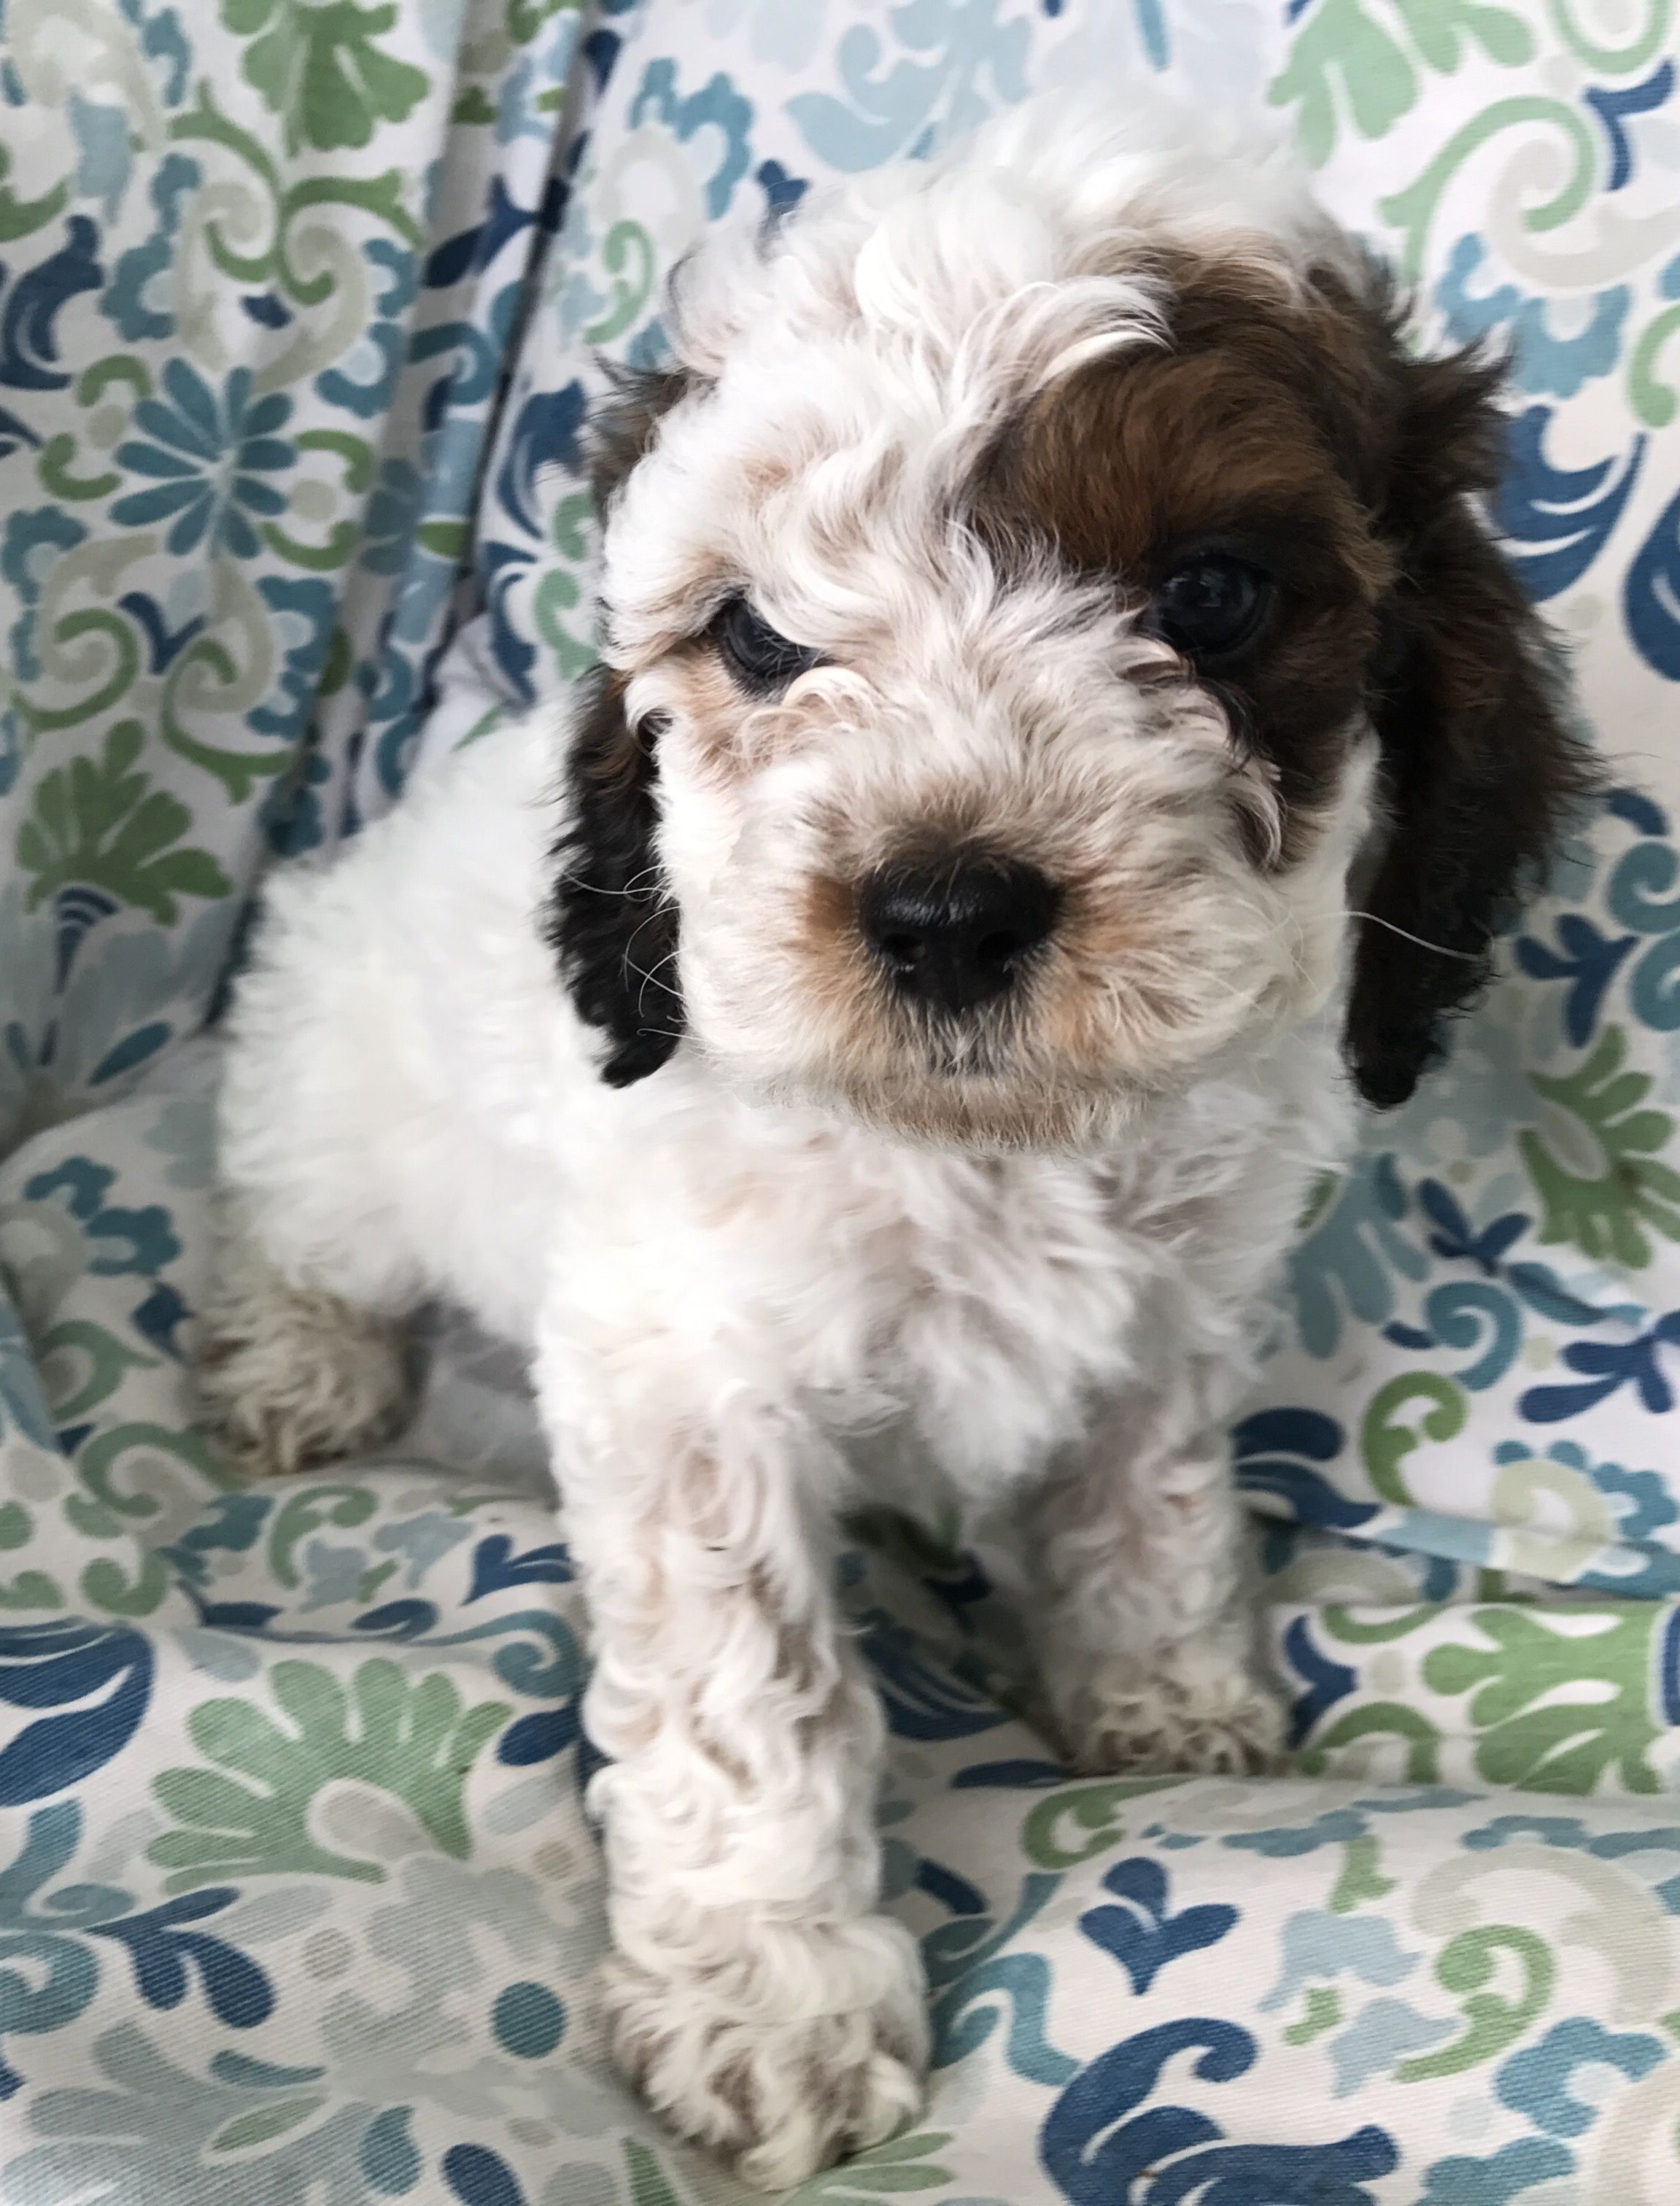 Cockapoo for sale, male. Go to Florida